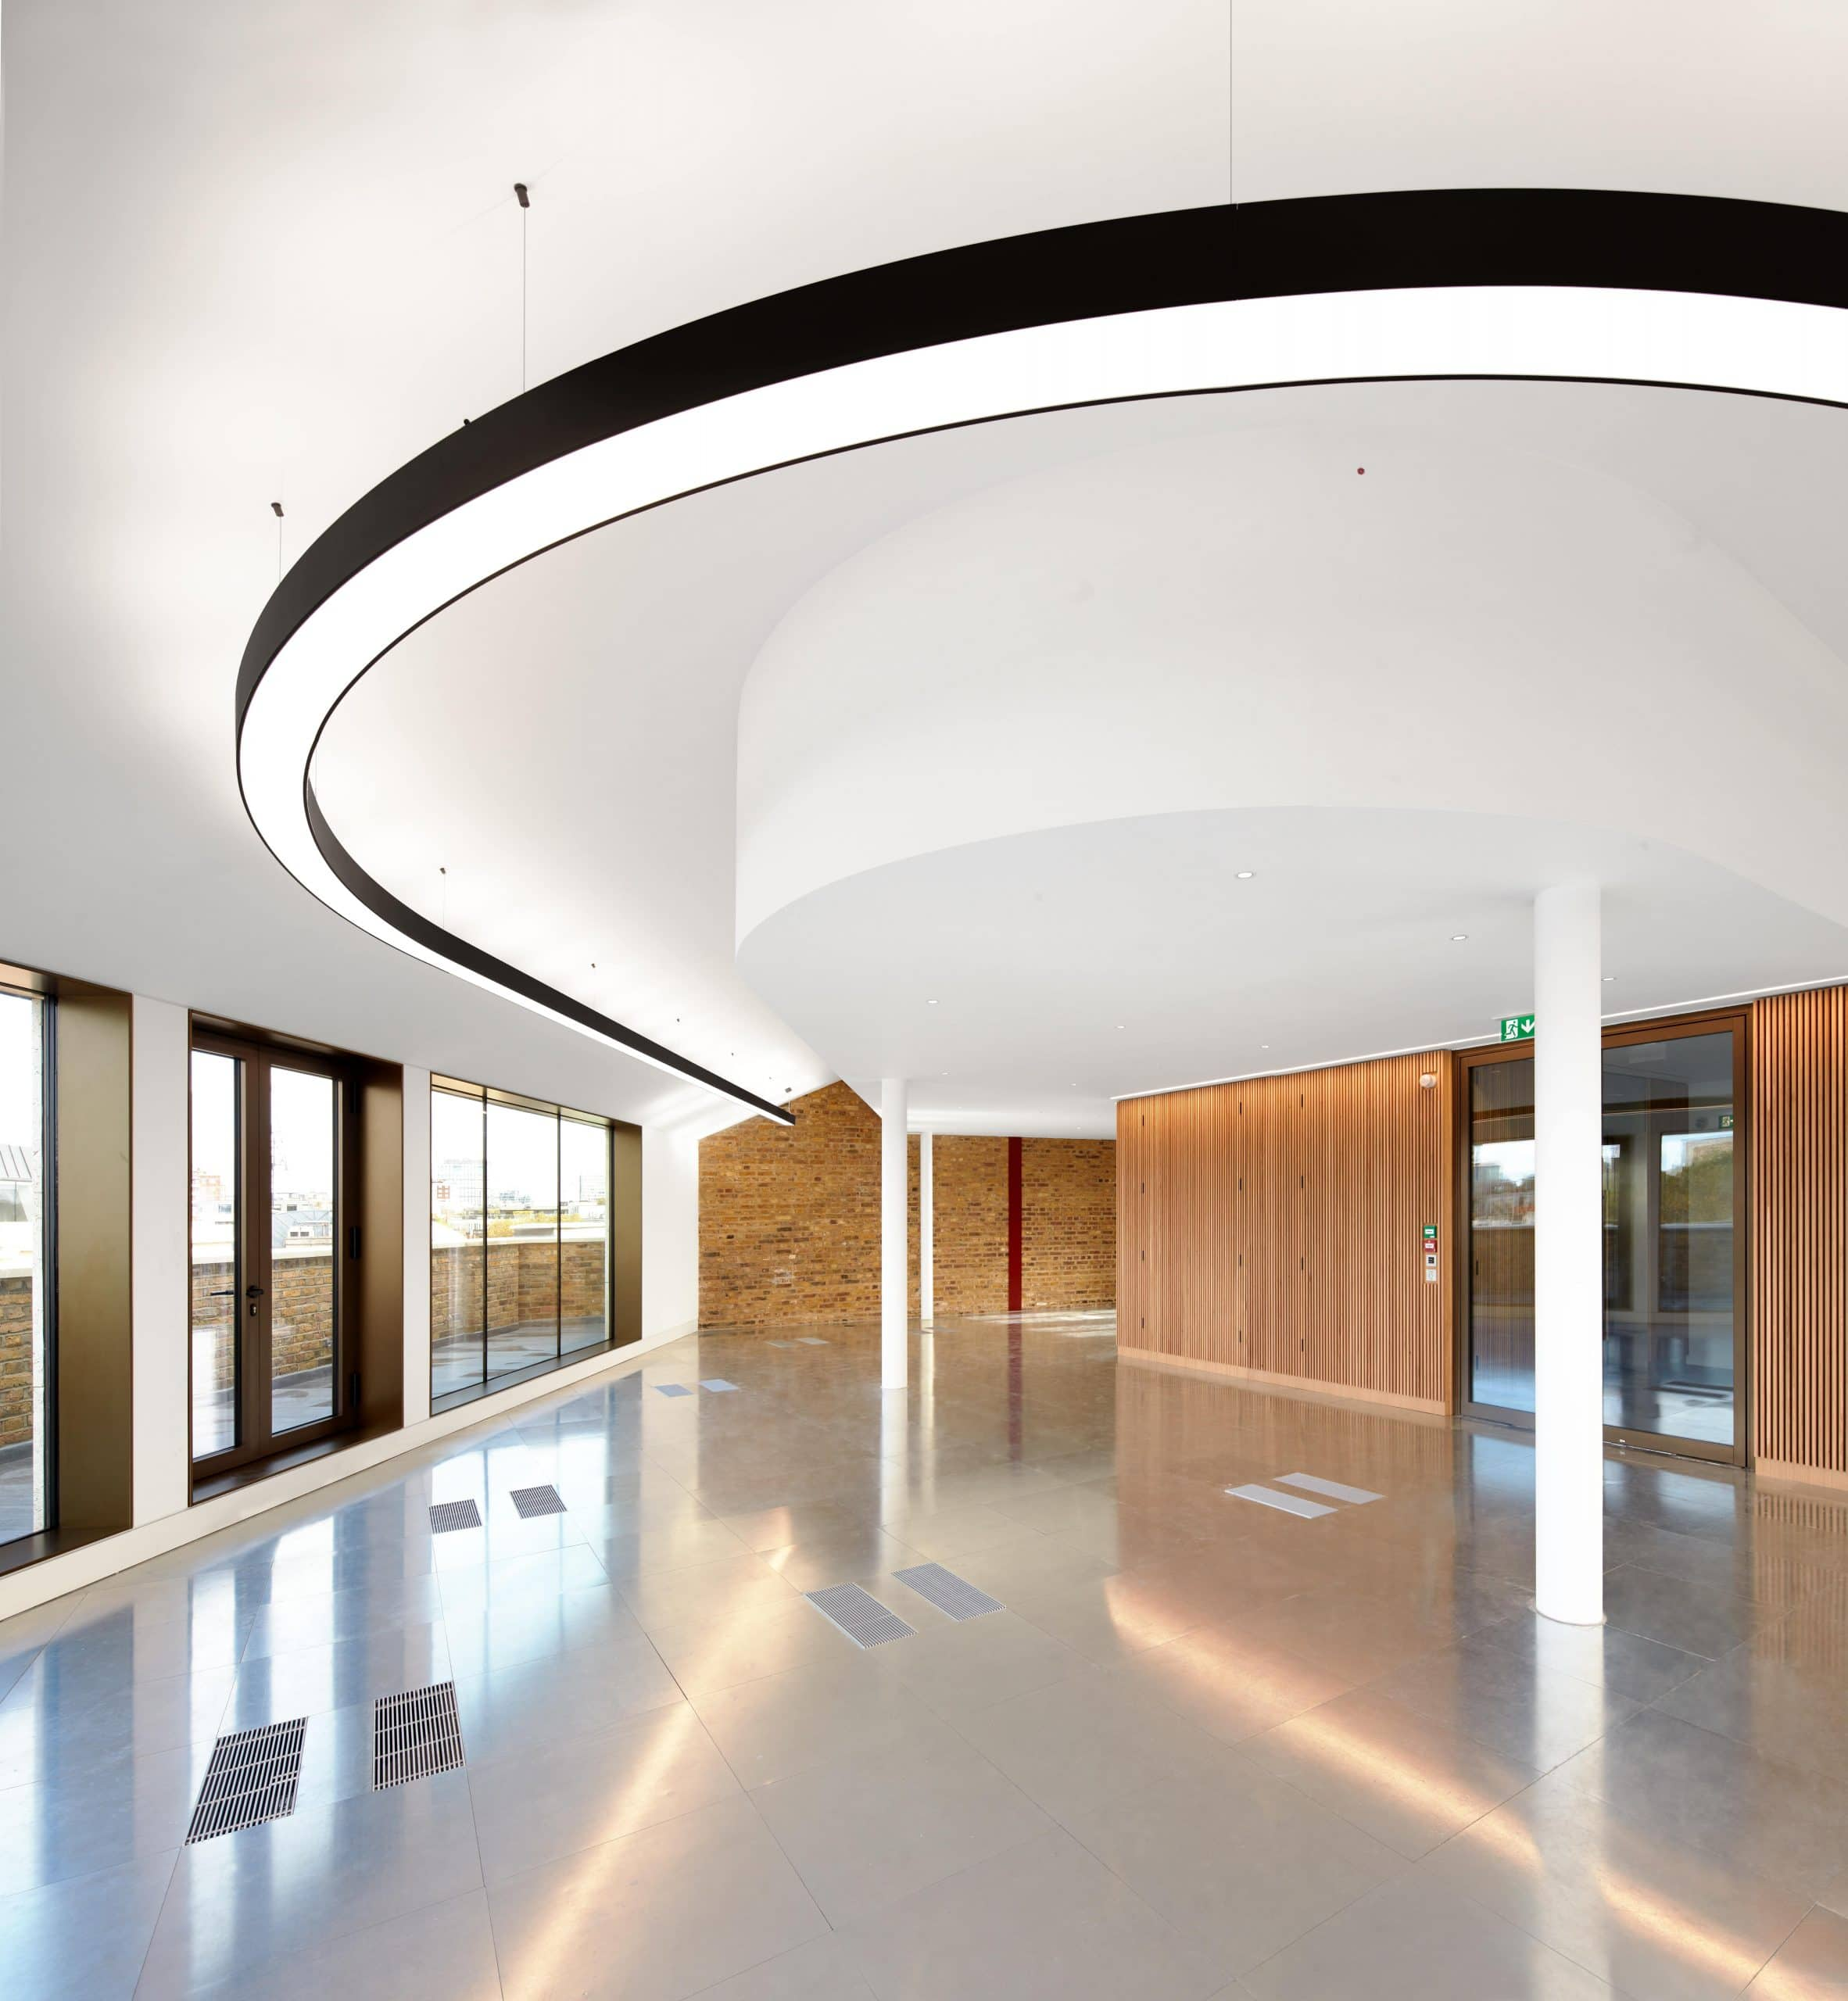 Frameless glass walls with glass door systems in a modern commercial office